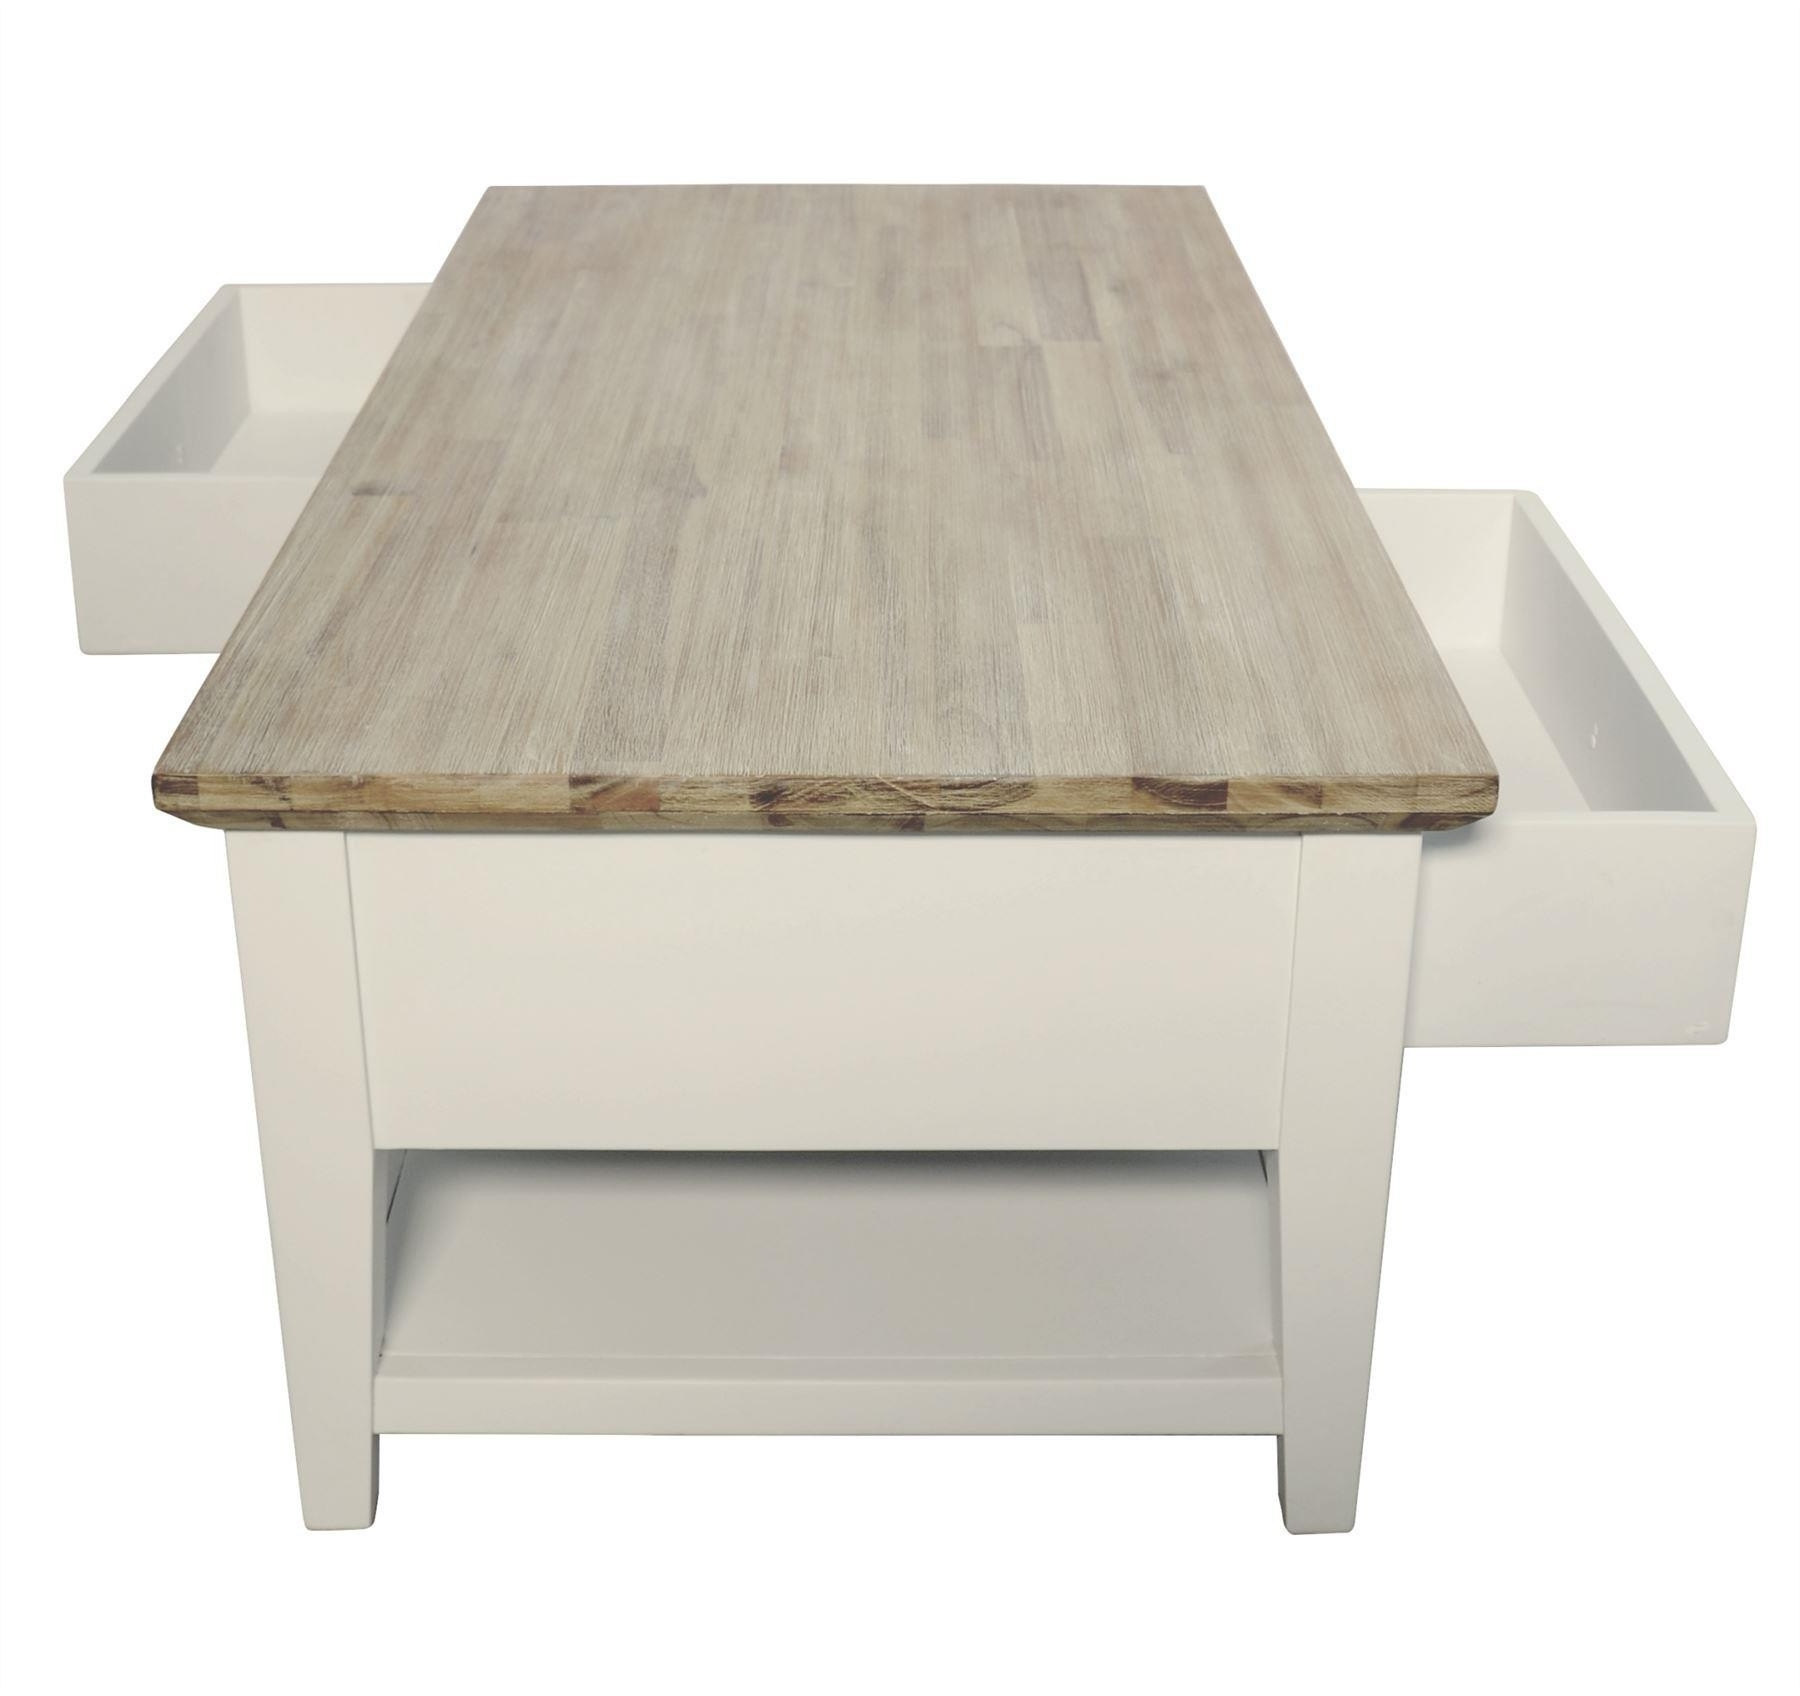 Most Popular Limewash Coffee Tables Throughout Lime Wash Coffee Table Unique Florence Coffee Table White – Coffee Table (View 18 of 20)